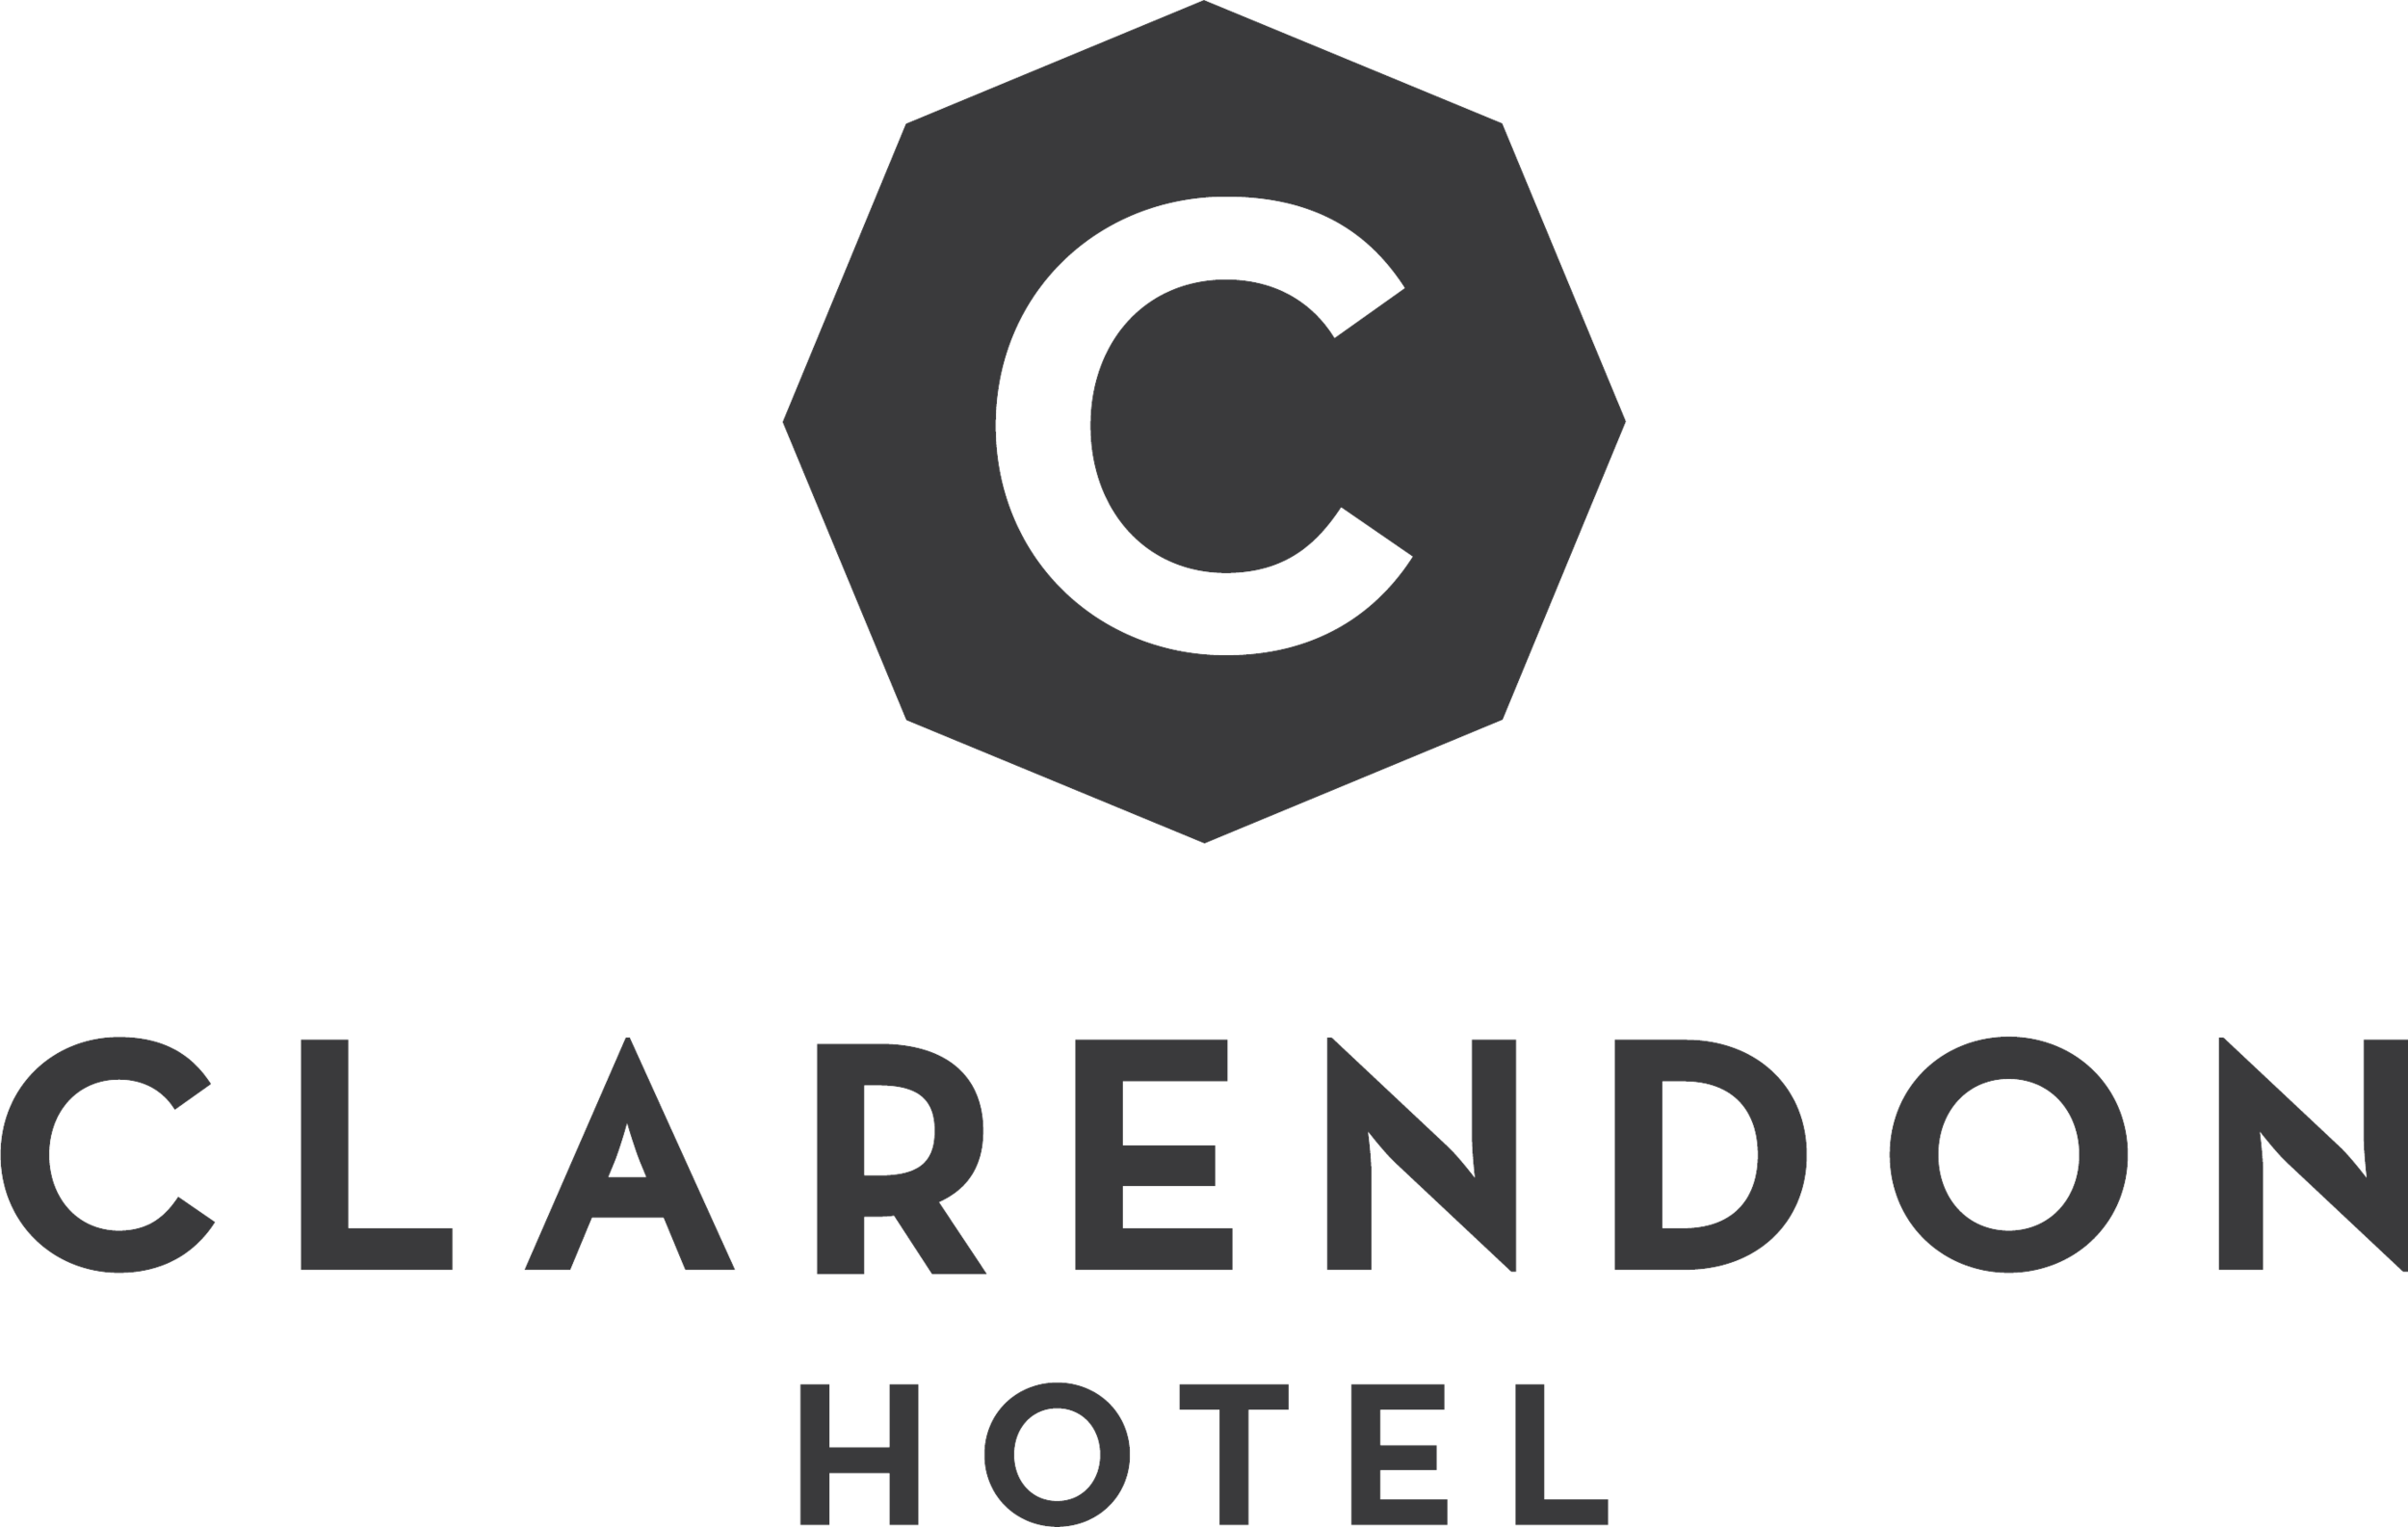 clarendon-hotel.png